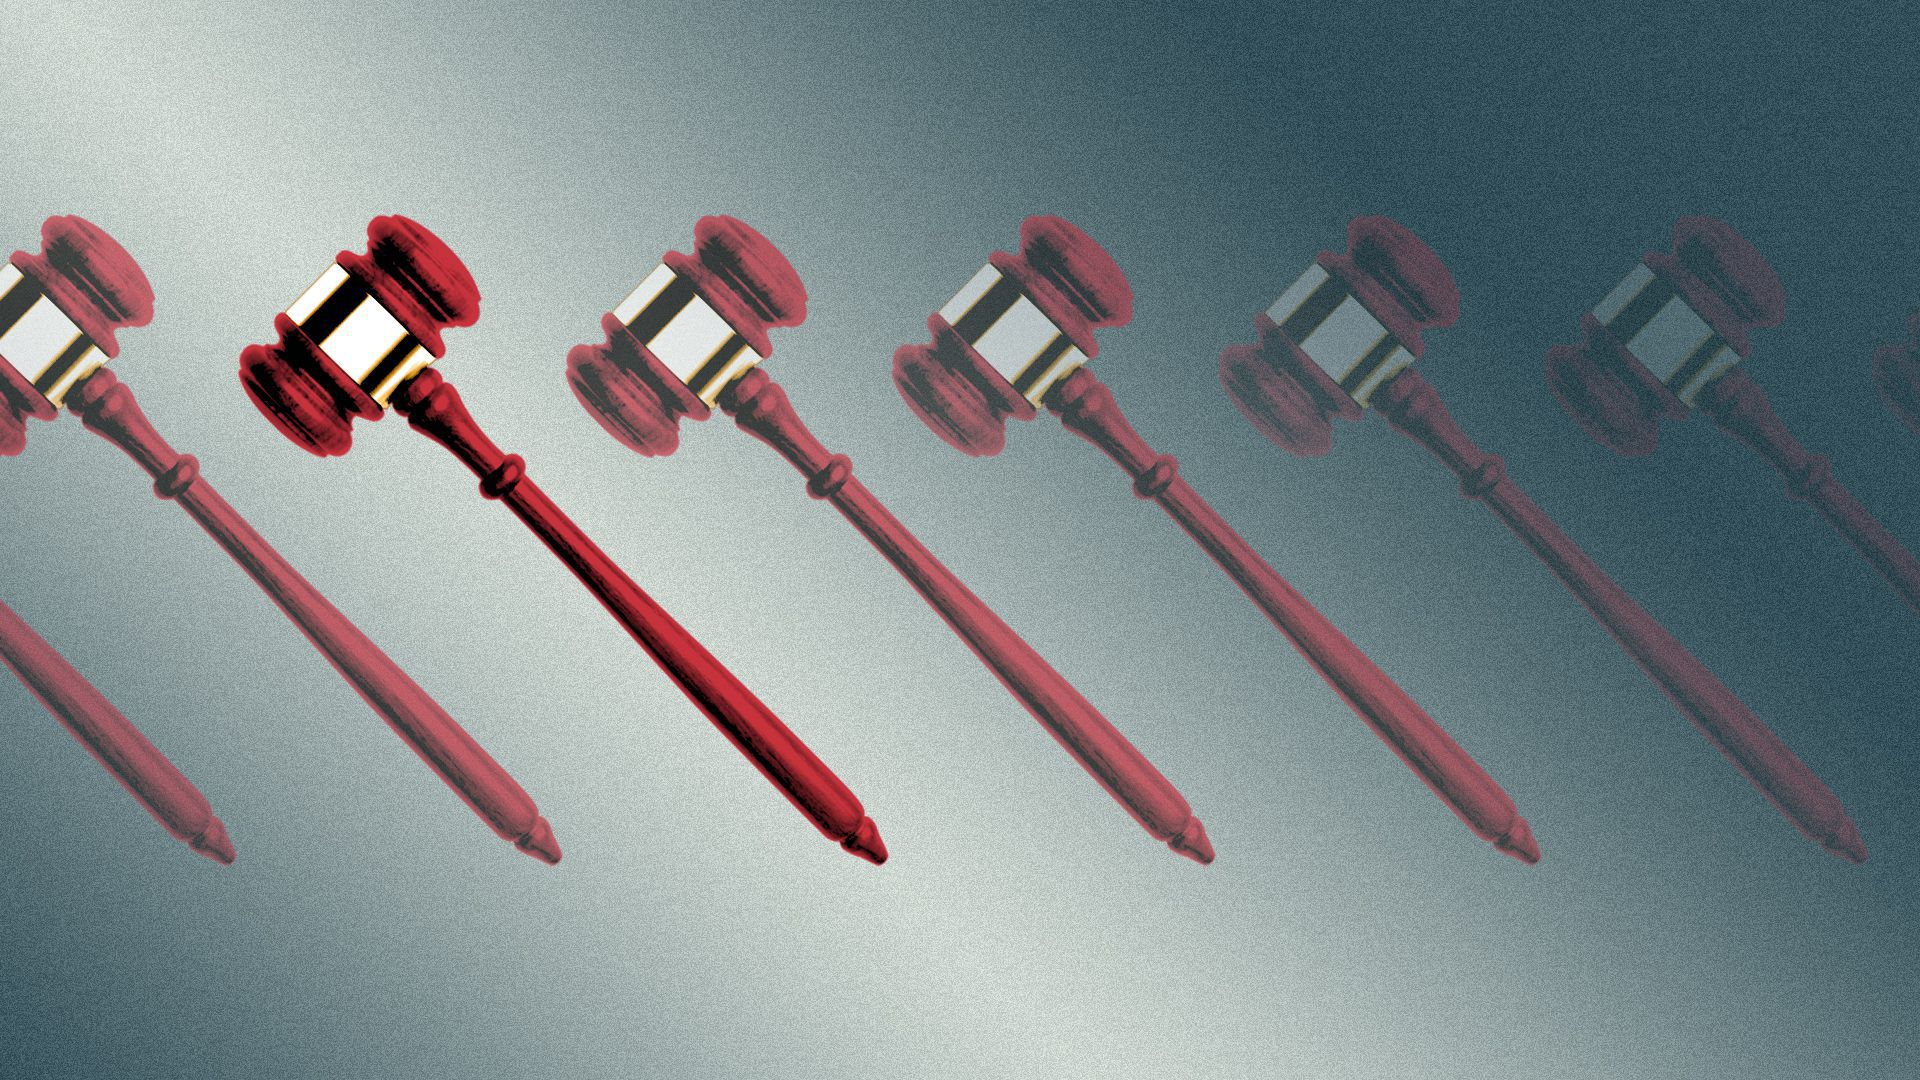 Illustration of a row of gavels, with all but one of them transparent.